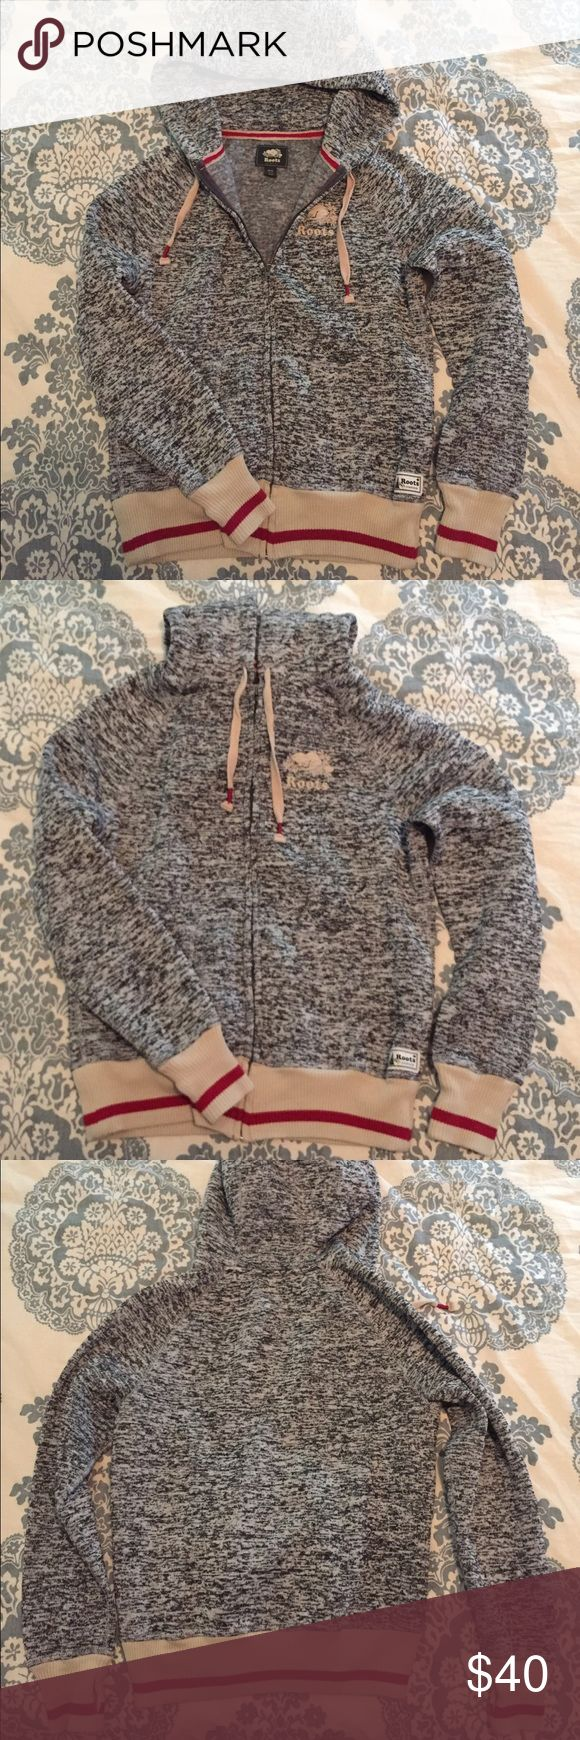 Roots Boyfriend Hoodie size medium Roots Canada Boyfriend Hoodie in black and grey mix, size medium. Brand new without tags. Interior is soft grey fleece, very cozy. It does run a bit large/oversized as it is their boyfriend fit. Roots Tops Sweatshirts & Hoodies